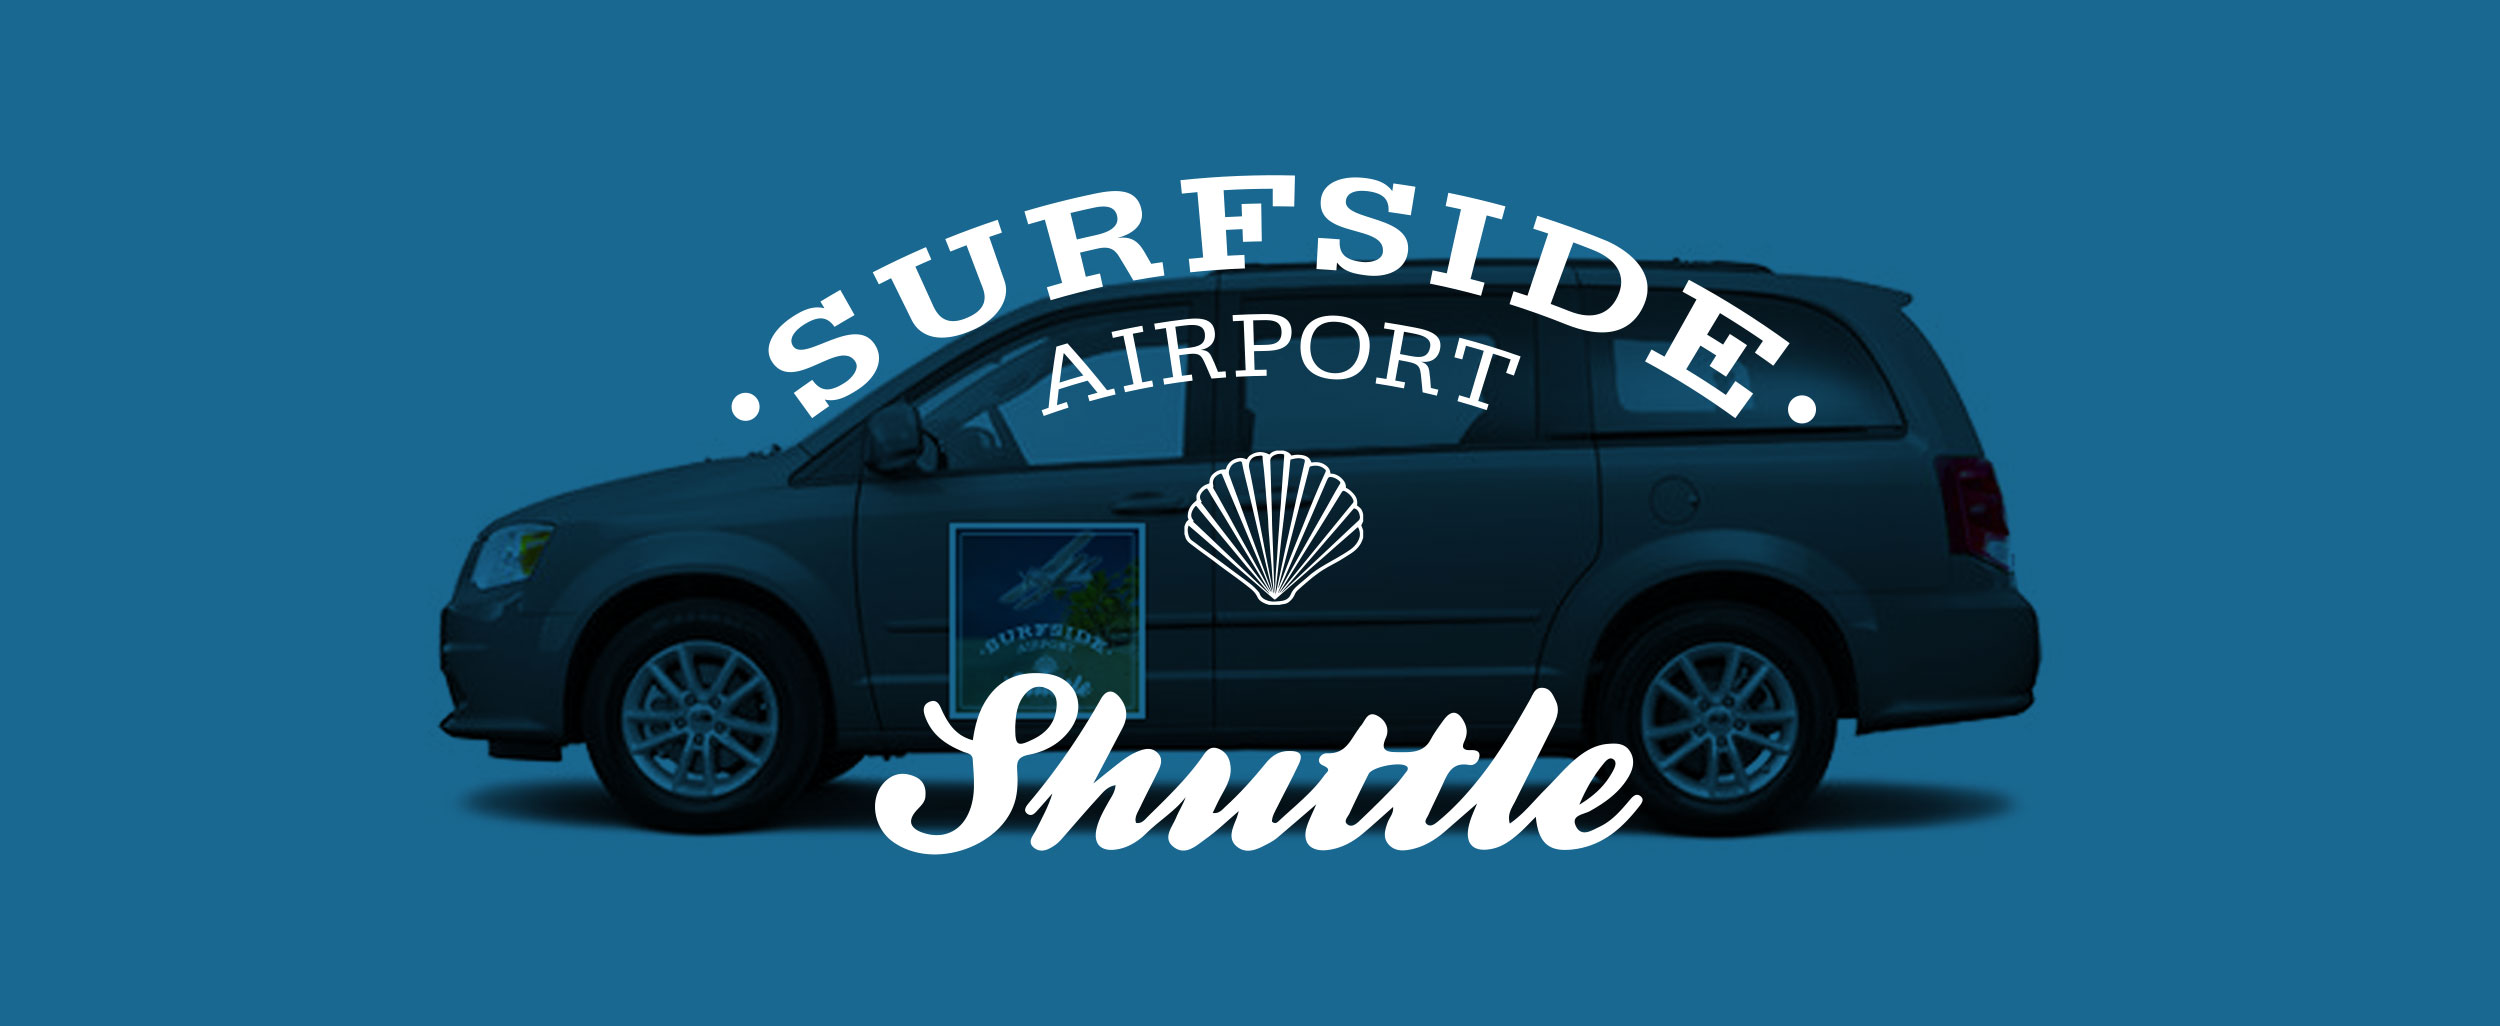 Surfside Shuttle